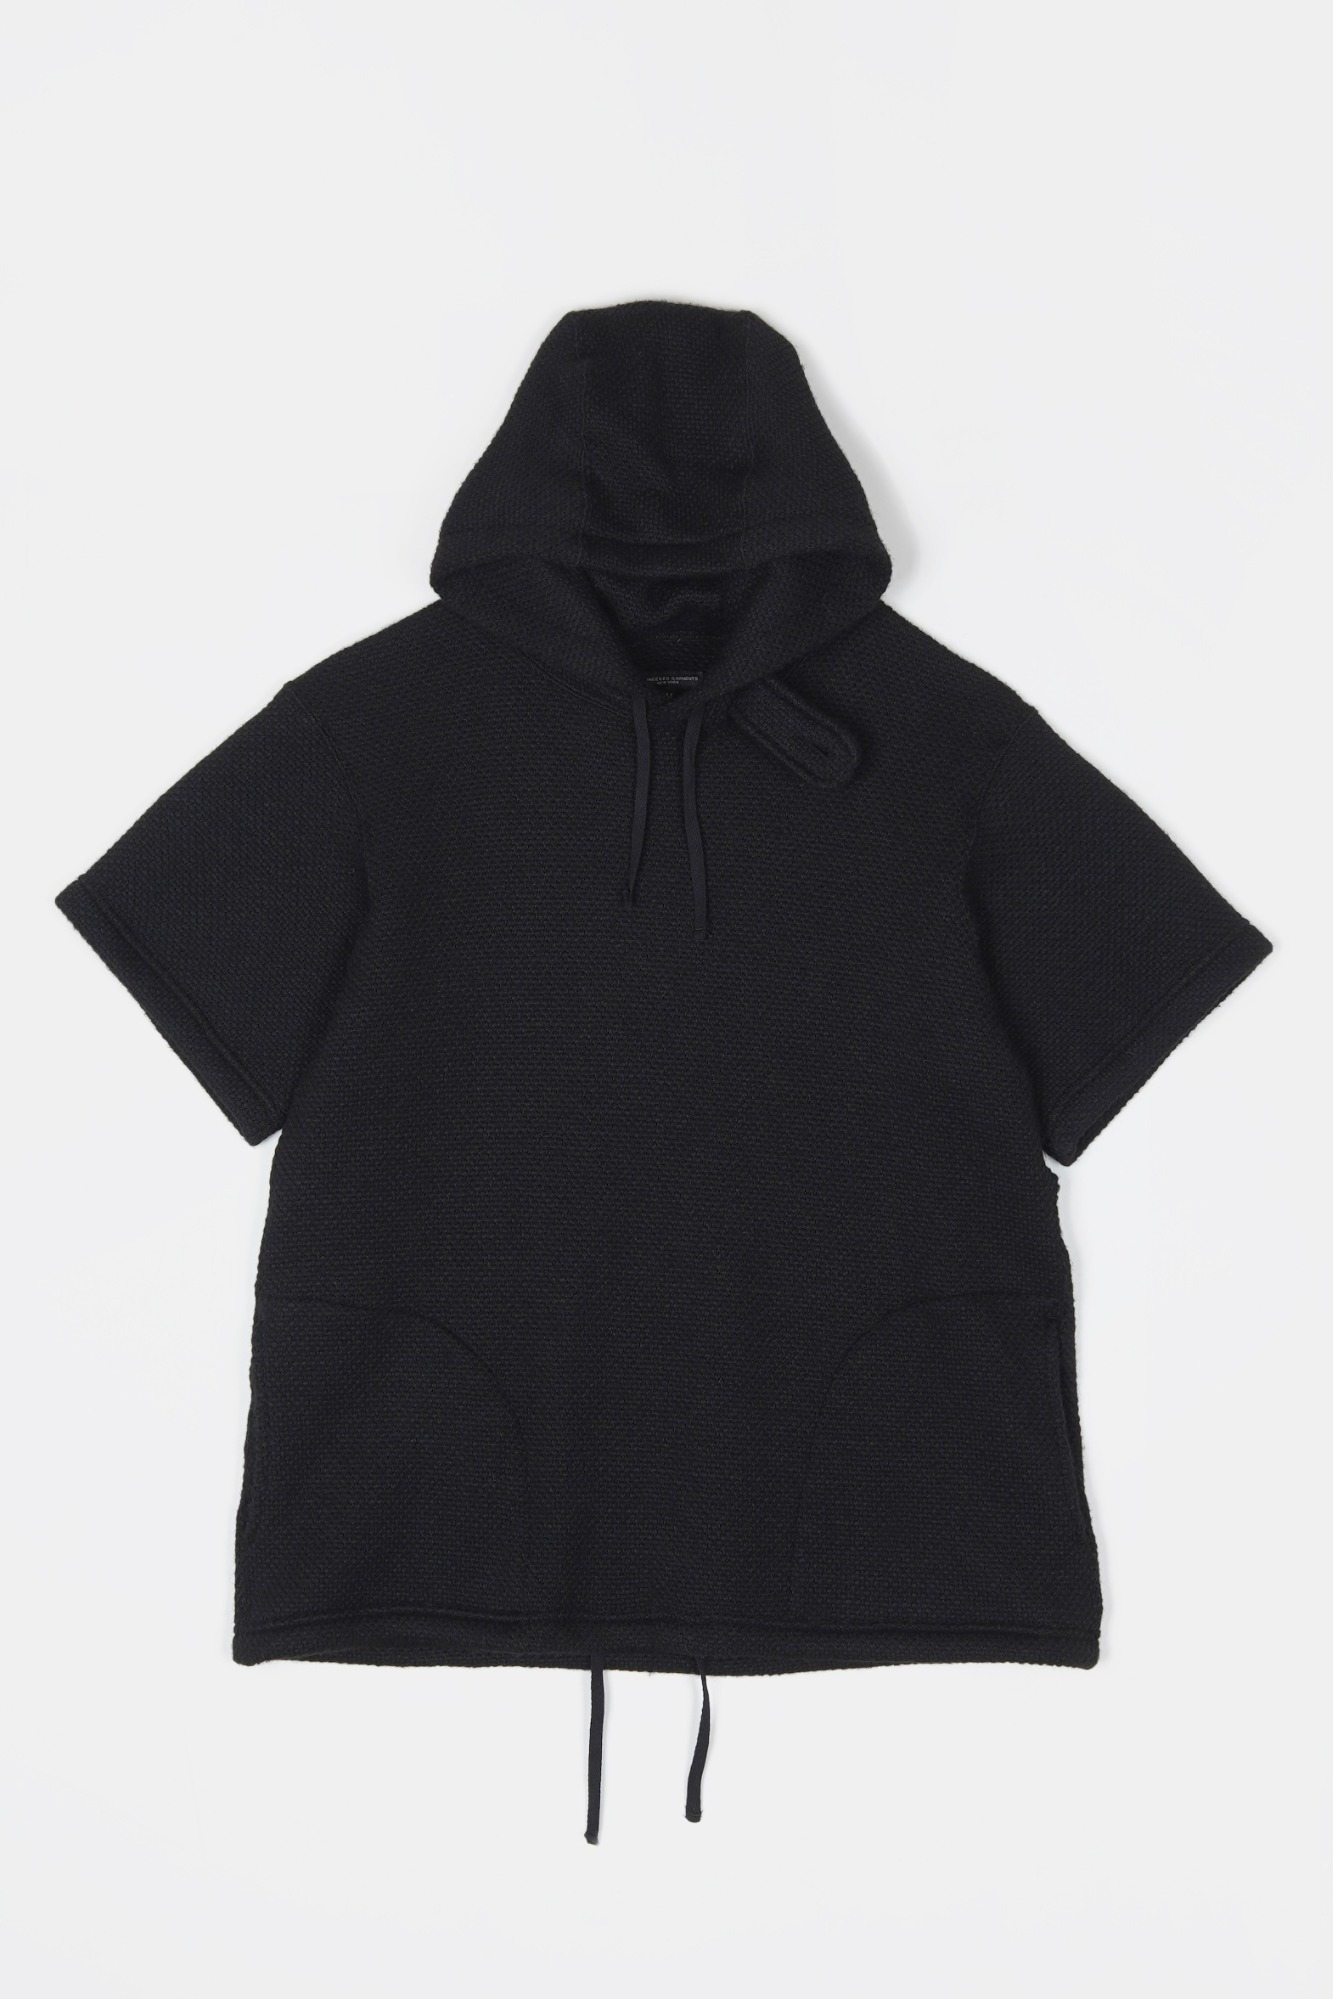 "ENGINEERED GARMENTS Short Sleeve Hoodie ""Black Poly Wool Sweater Knit"""